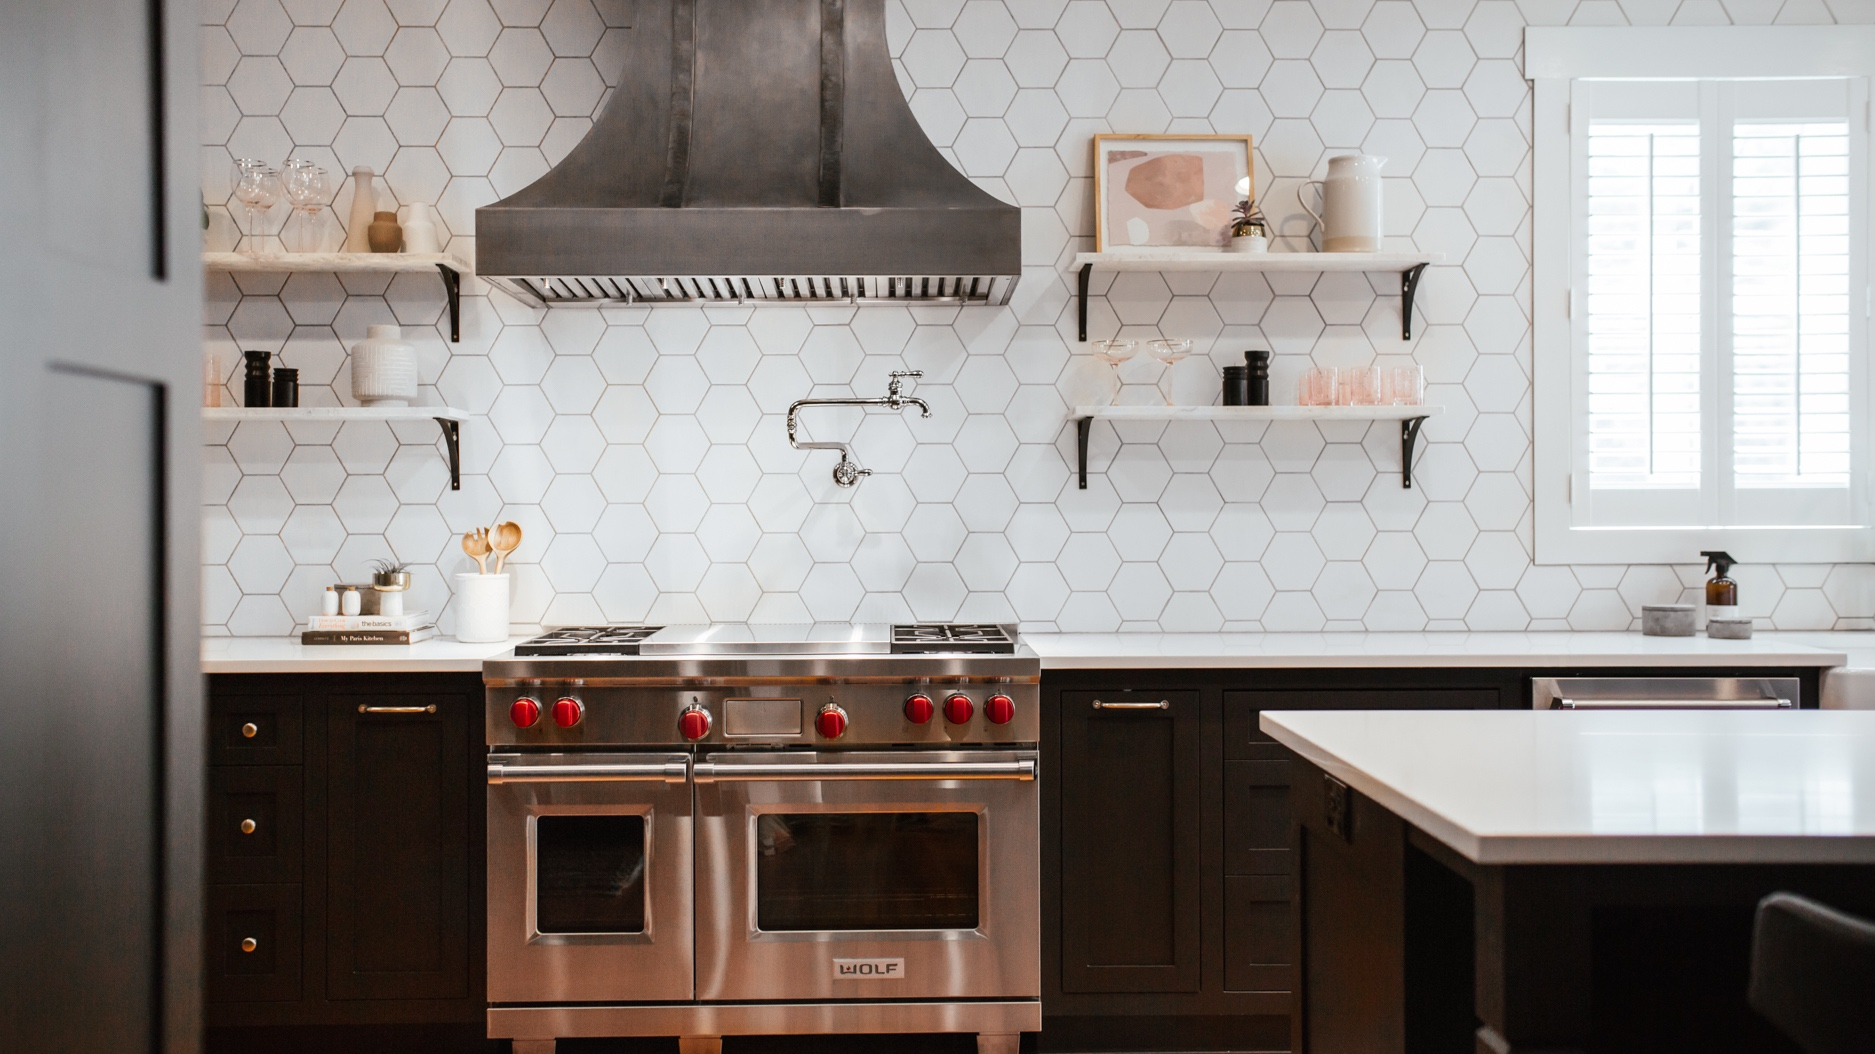 REAL SIMPLE - 11 Pretty-and-Practical Home Organization Tools Design Pros Swear by